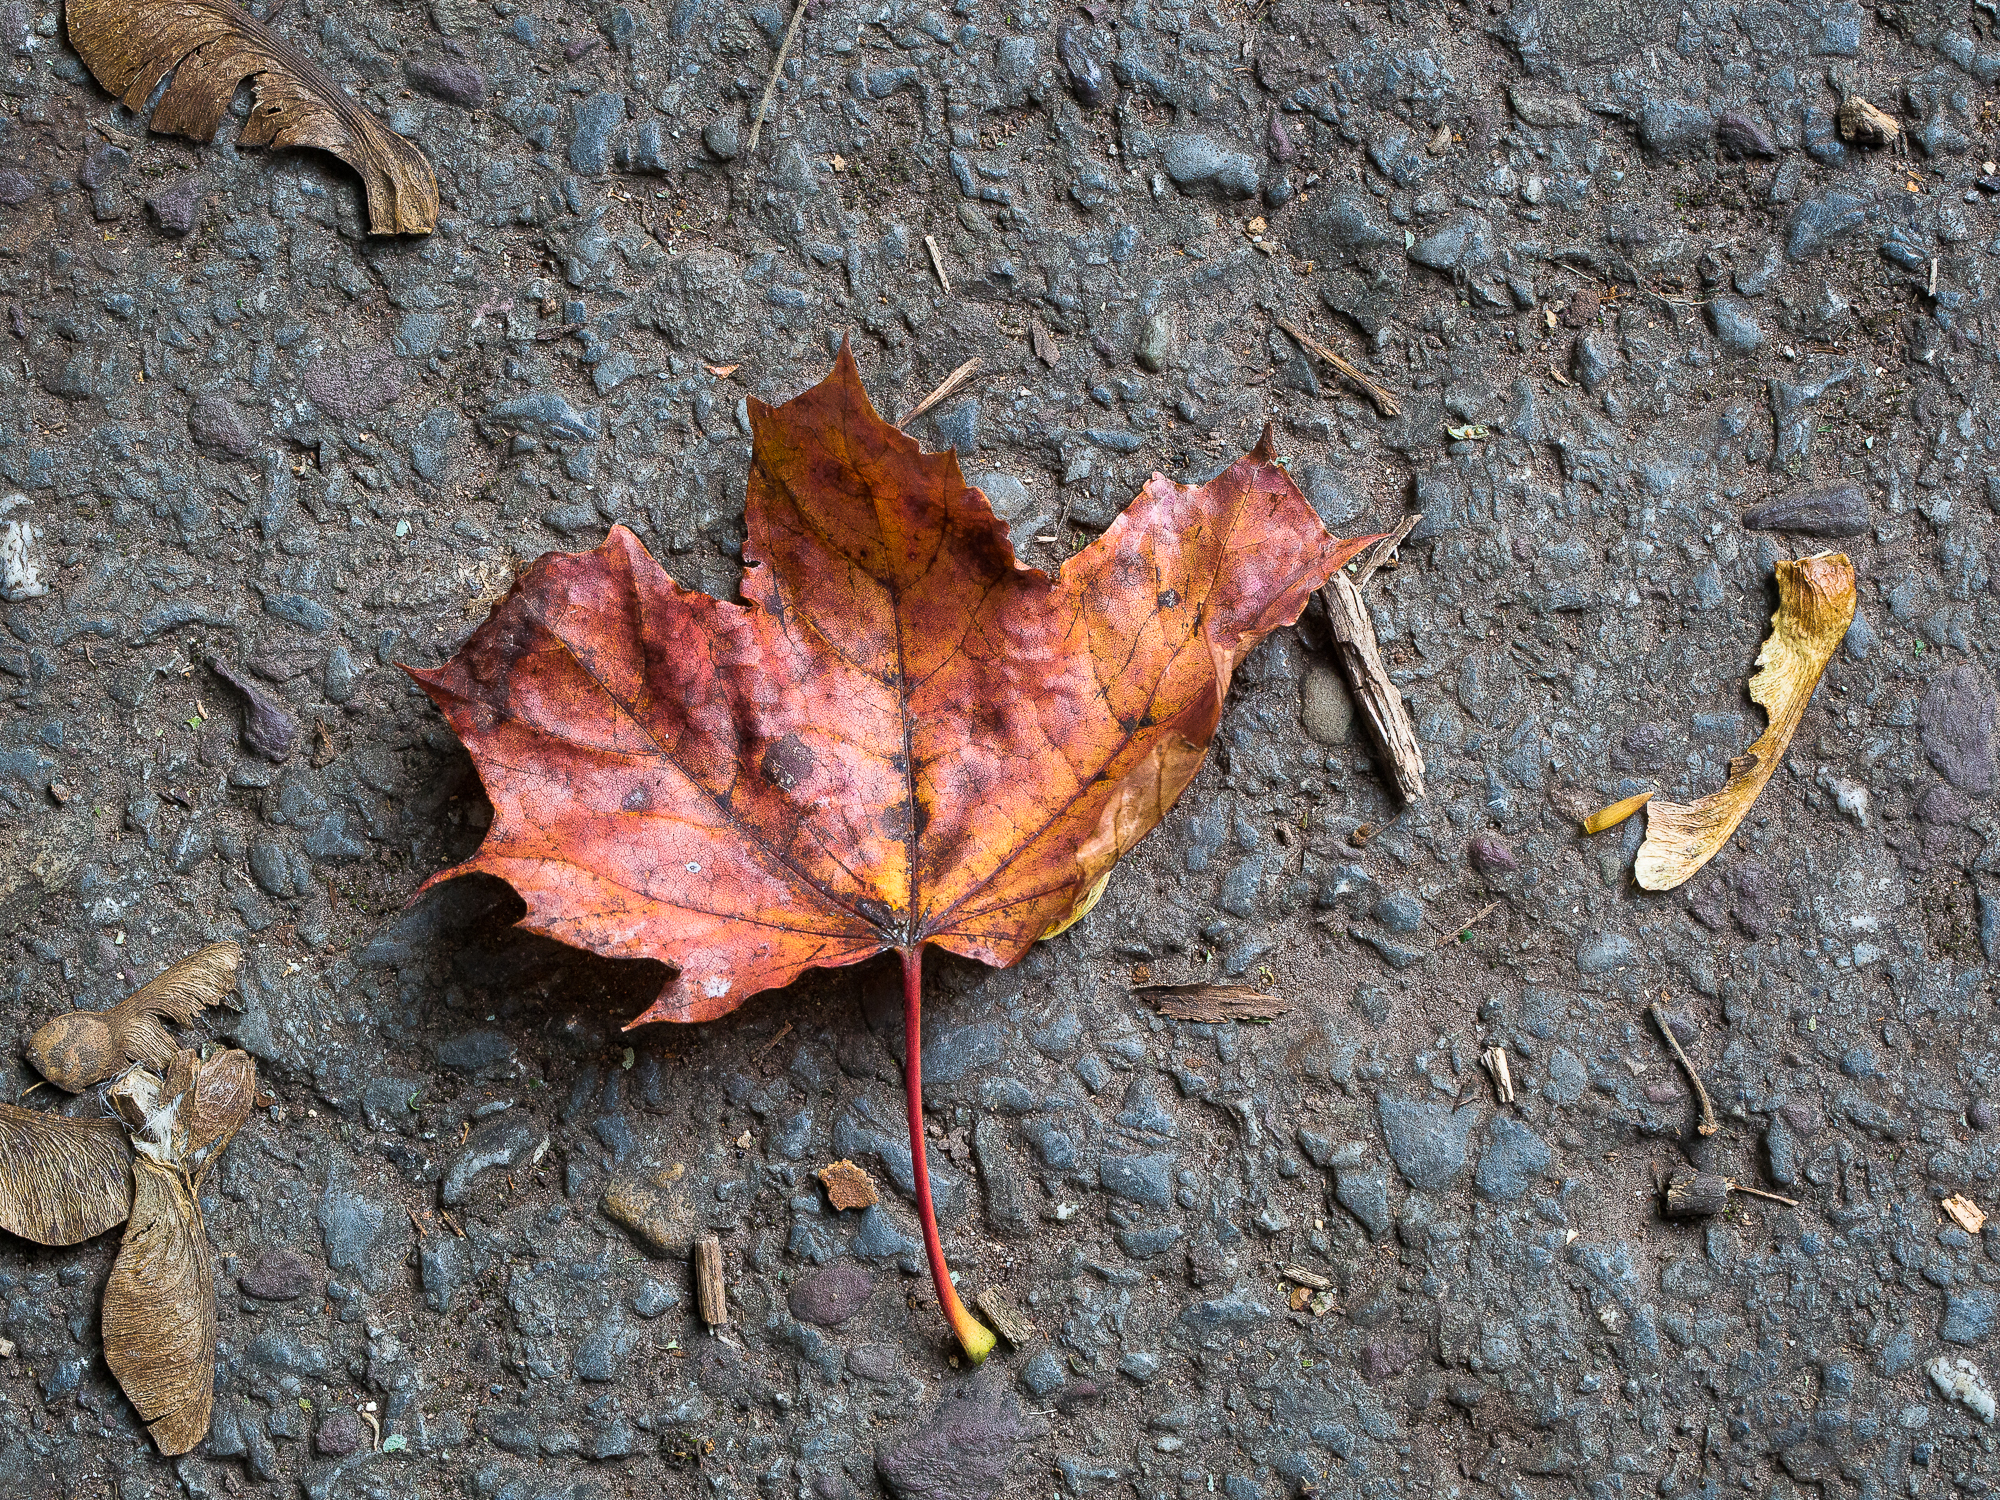 A sycamore leaf, stricken on a cold, hard, tarmac path